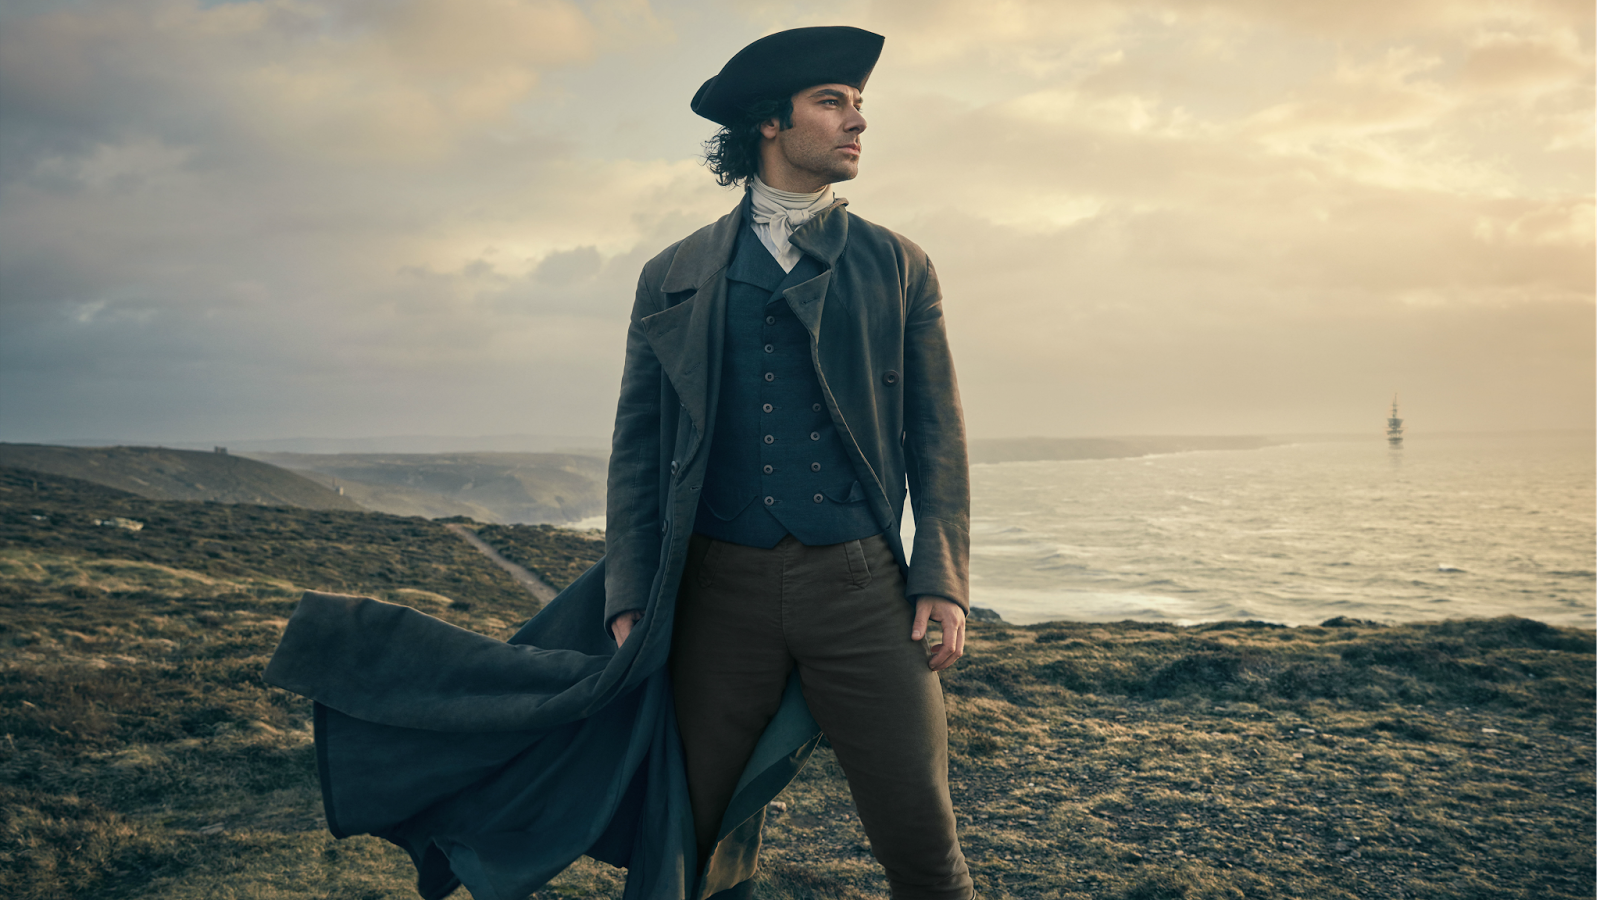 Eclectic Pop - TV's Top 20 Costuma Drama Soundtracks - Poldark